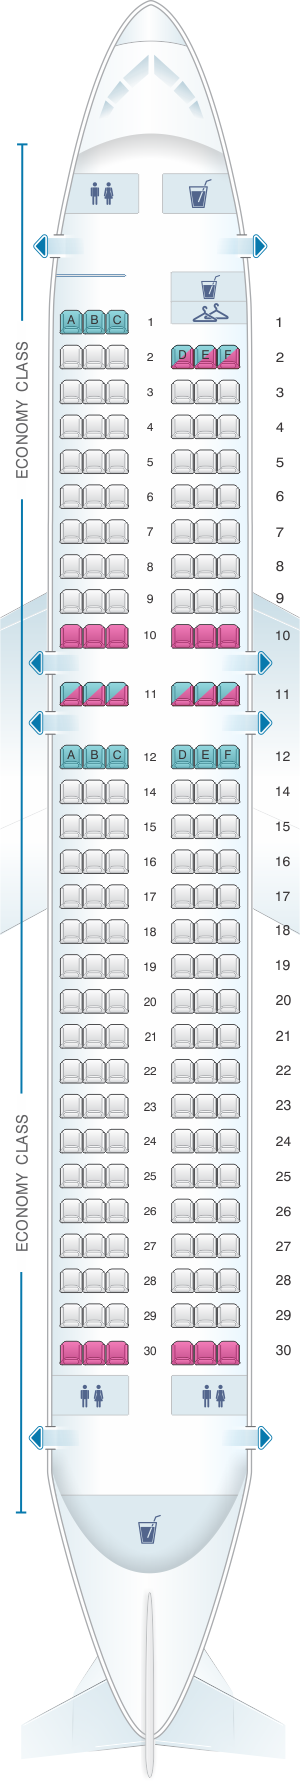 Seat map for Iberia Airbus A320 Express